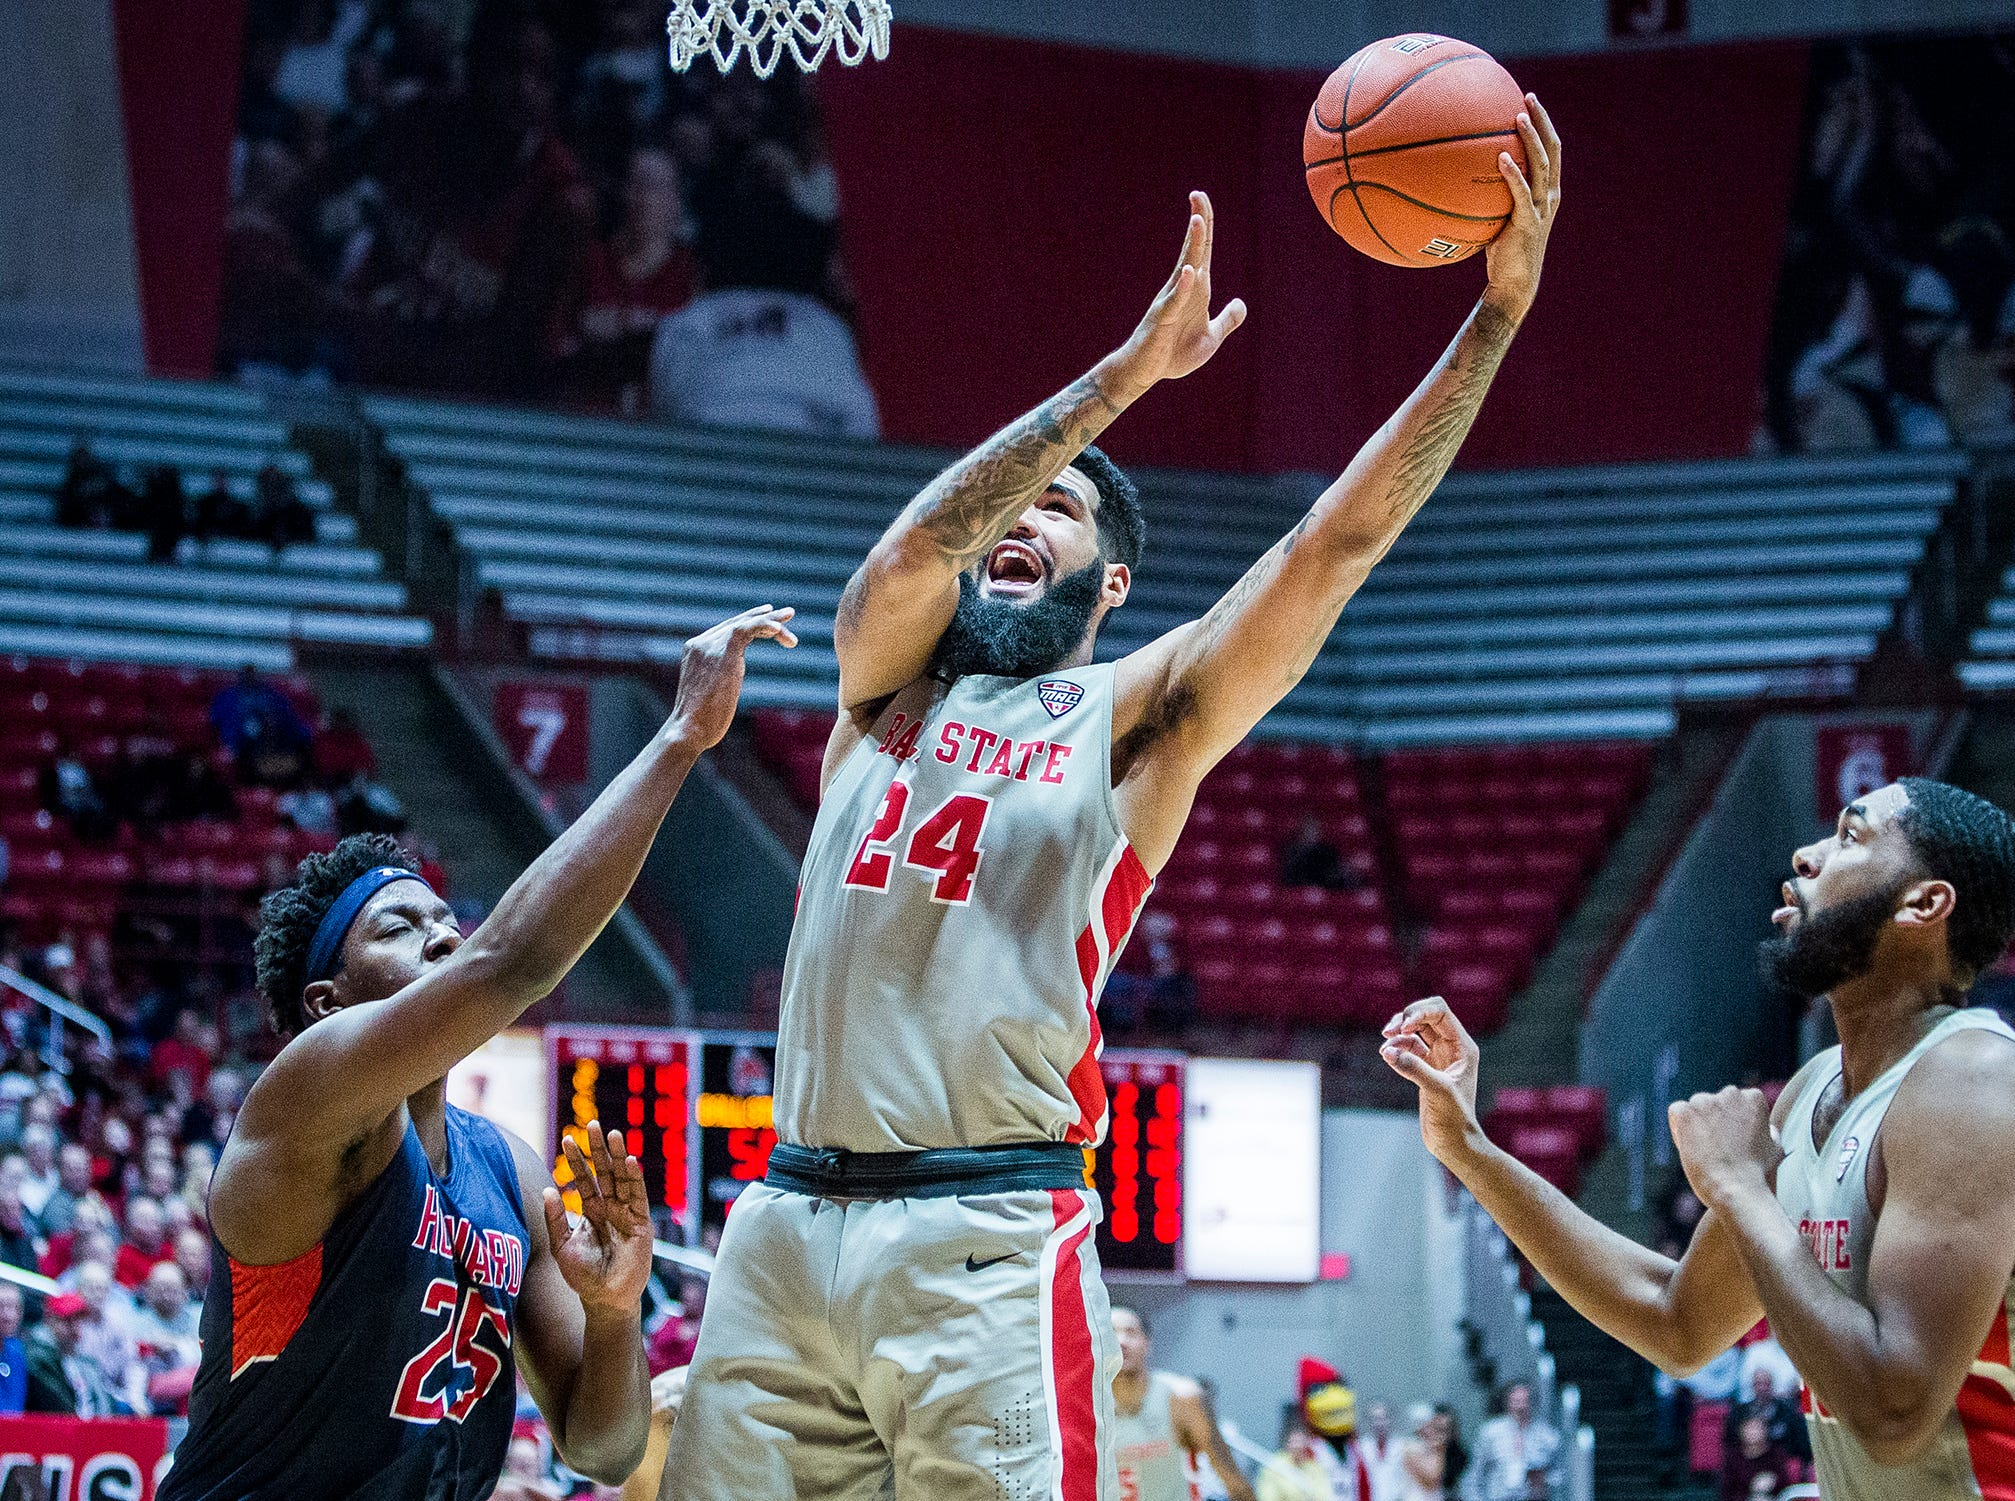 Ball State's Trey Moses shoots past Howard's defense during their game at Worthen Arena Thursday, Dec. 20, 2018.